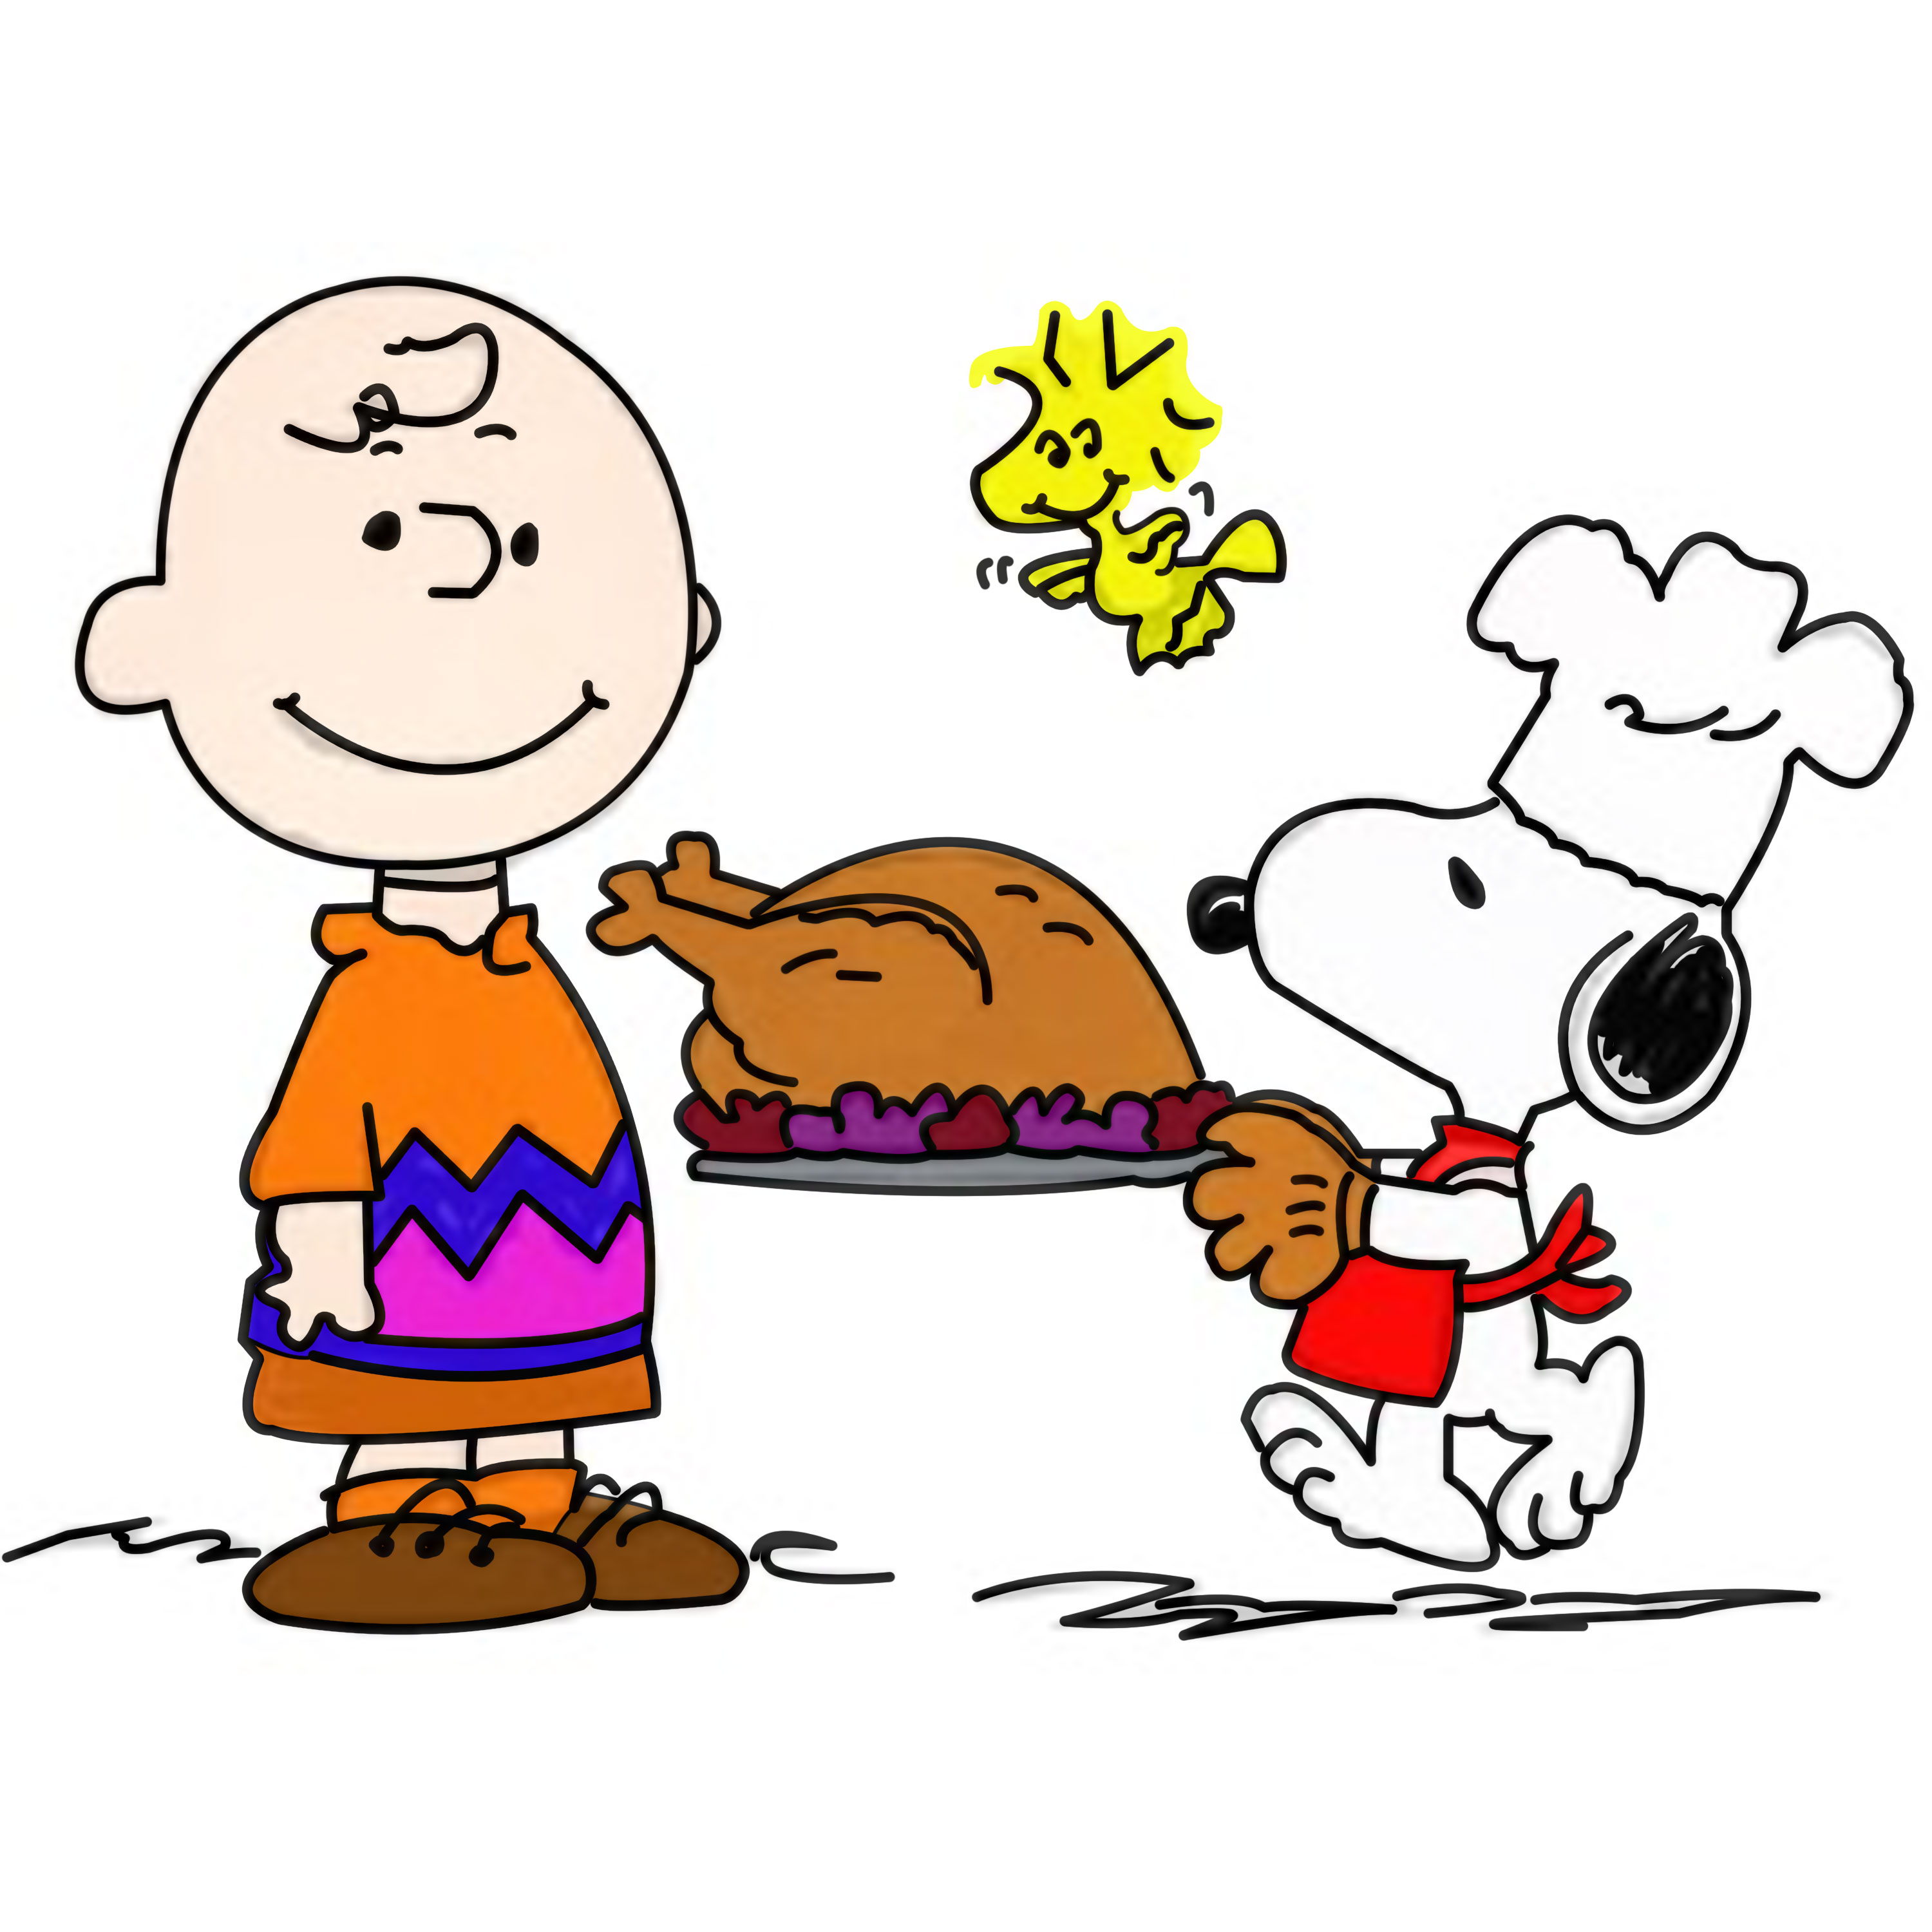 Snoopy happy thanksgiving clipart graphic free download Free Snoopy Thanksgiving Cliparts, Download Free Clip Art ... graphic free download